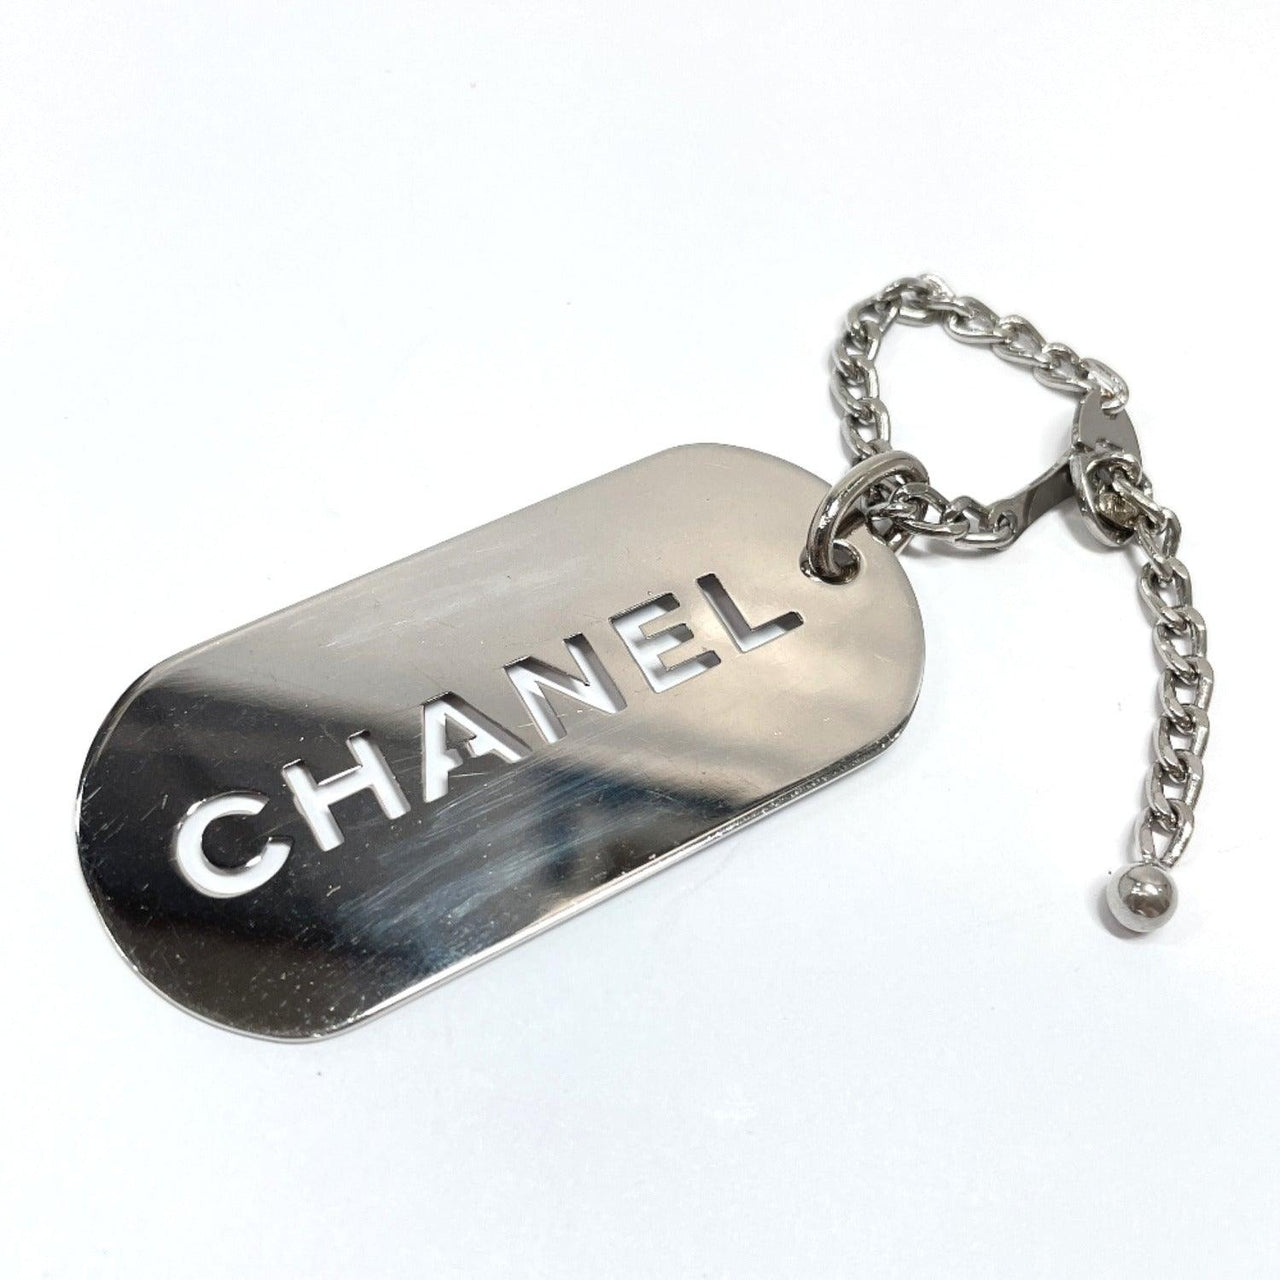 CHANEL key ring 04V Bag charm Dog tag metal Silver Women Used